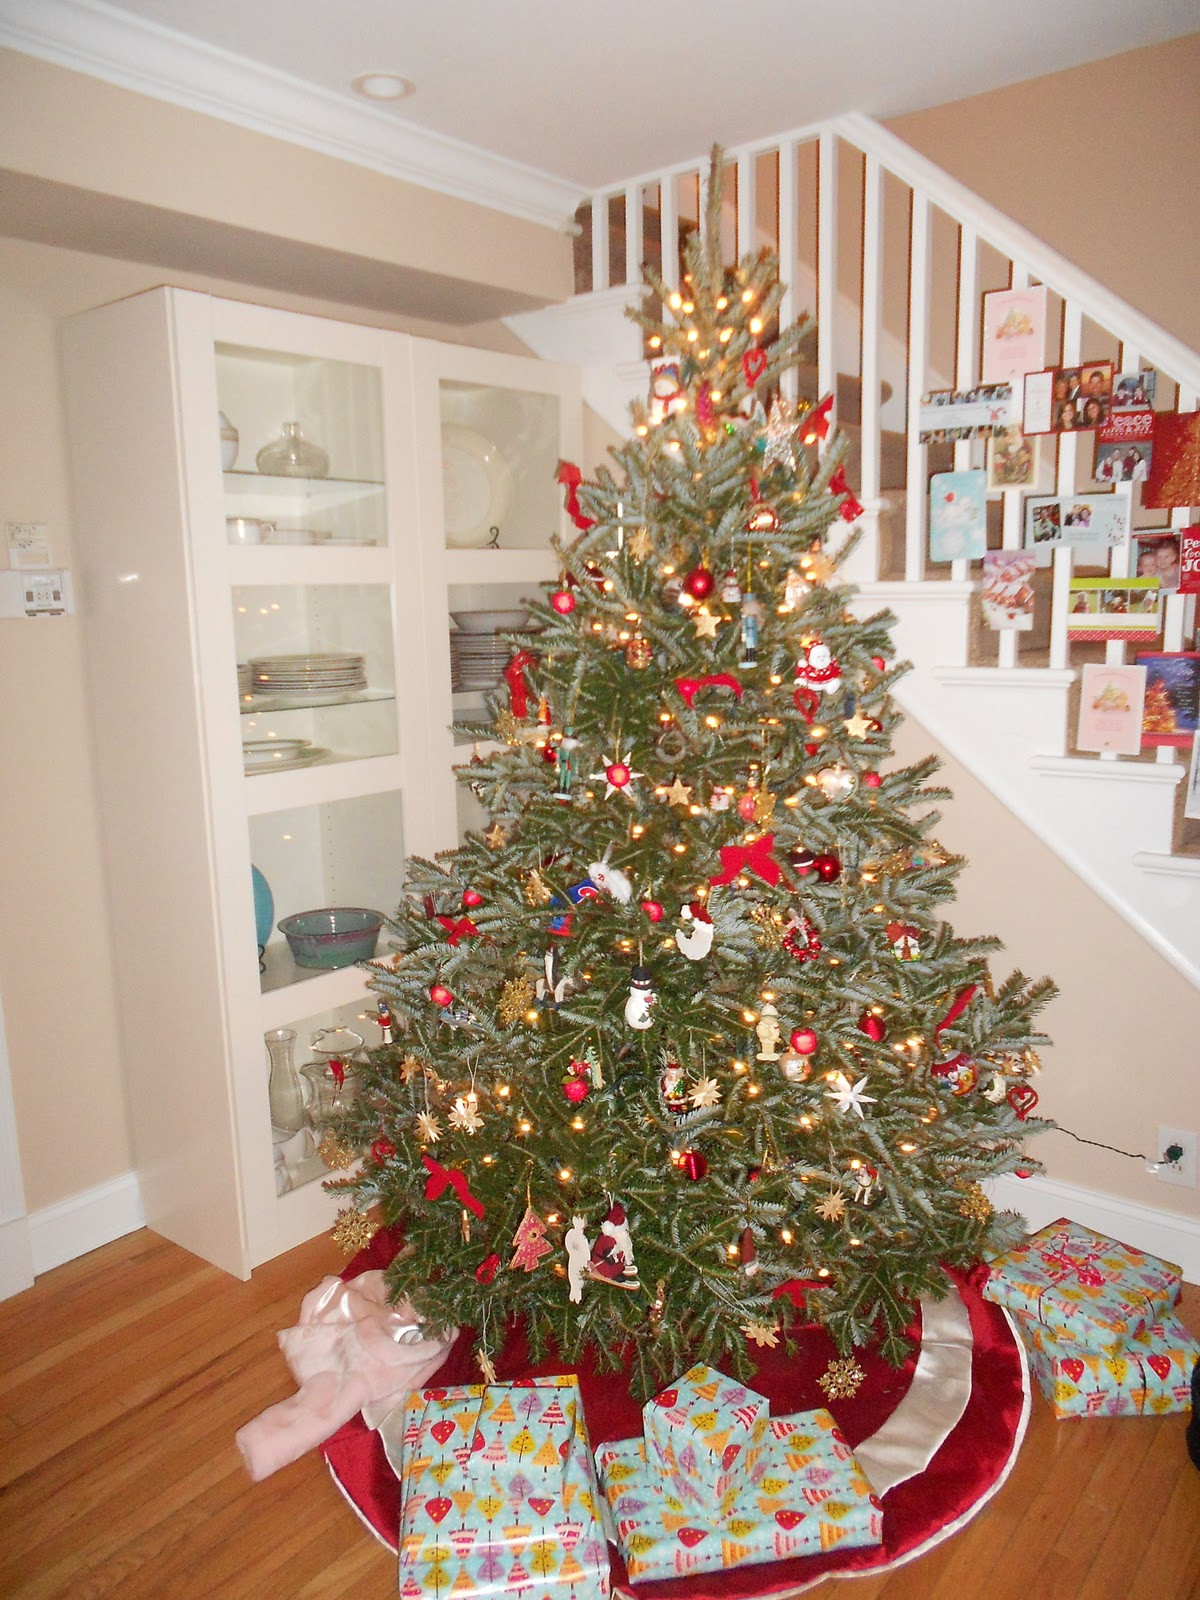 Luscious life decor 2011 we have a new red tree skirt from home goods 20 and we hung our holiday cards on our stairway here are a few photos m4hsunfo